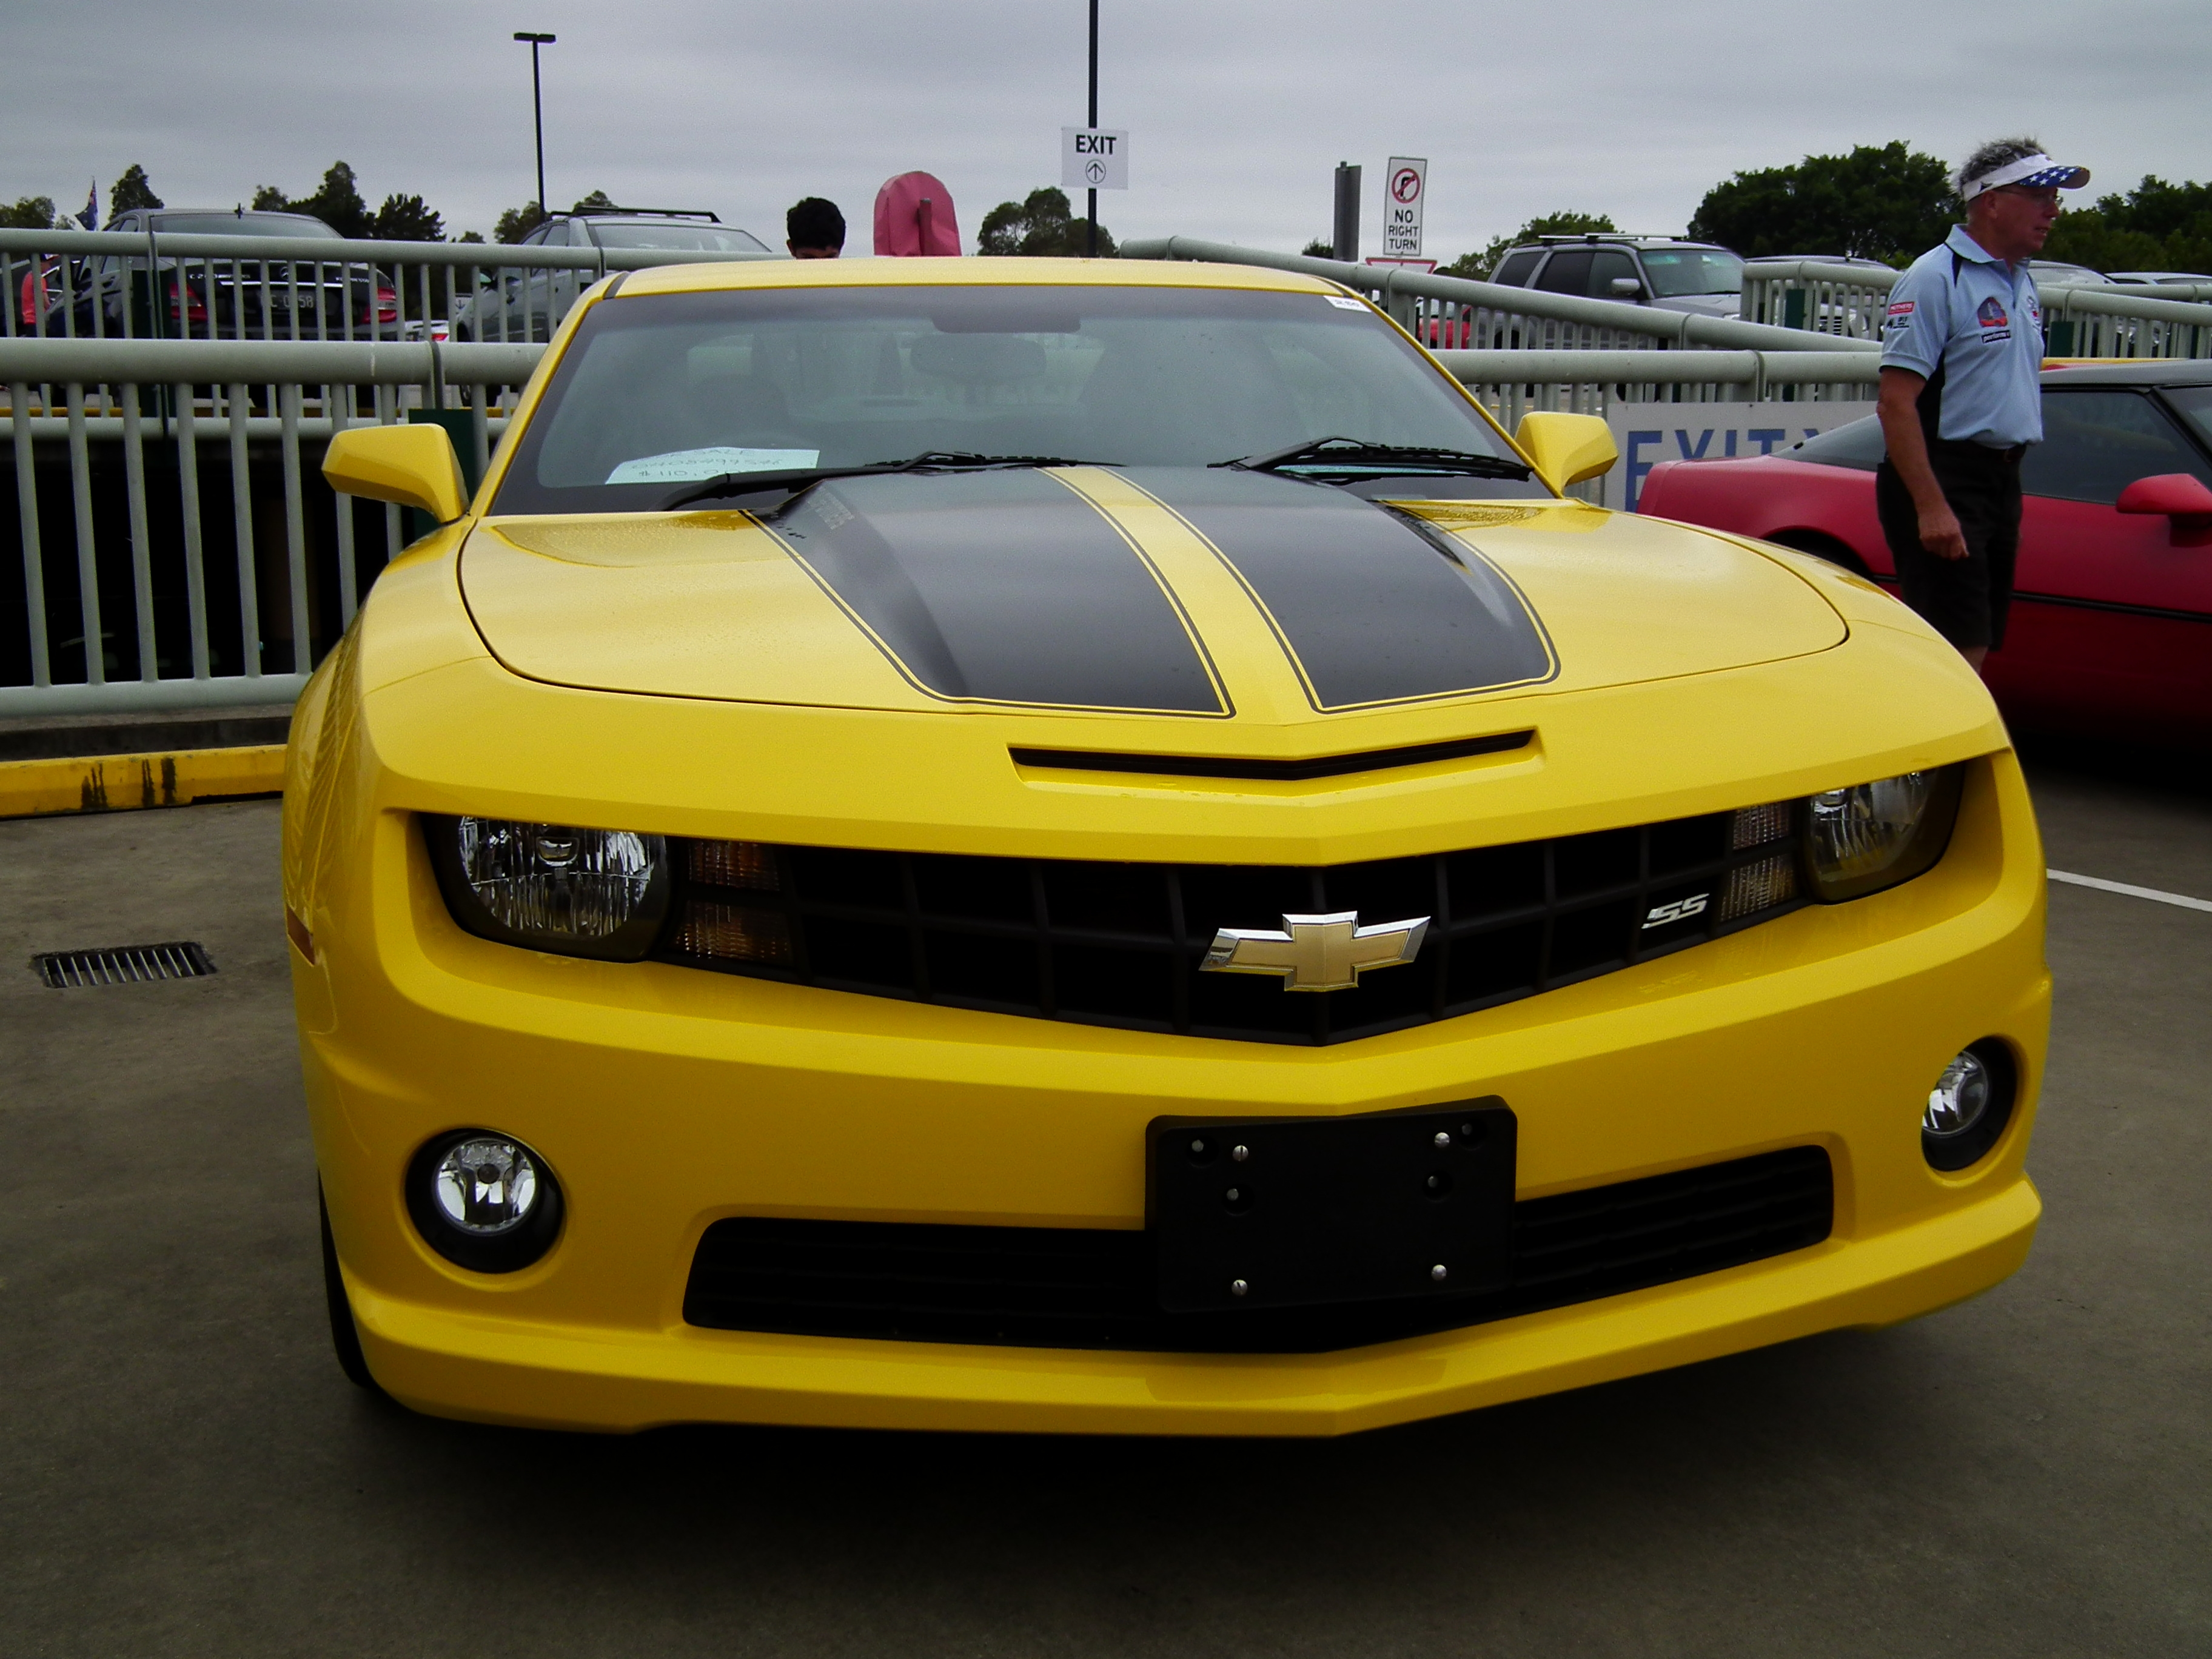 File2010 Chevrolet Camaro SS Transformers Edition coupe